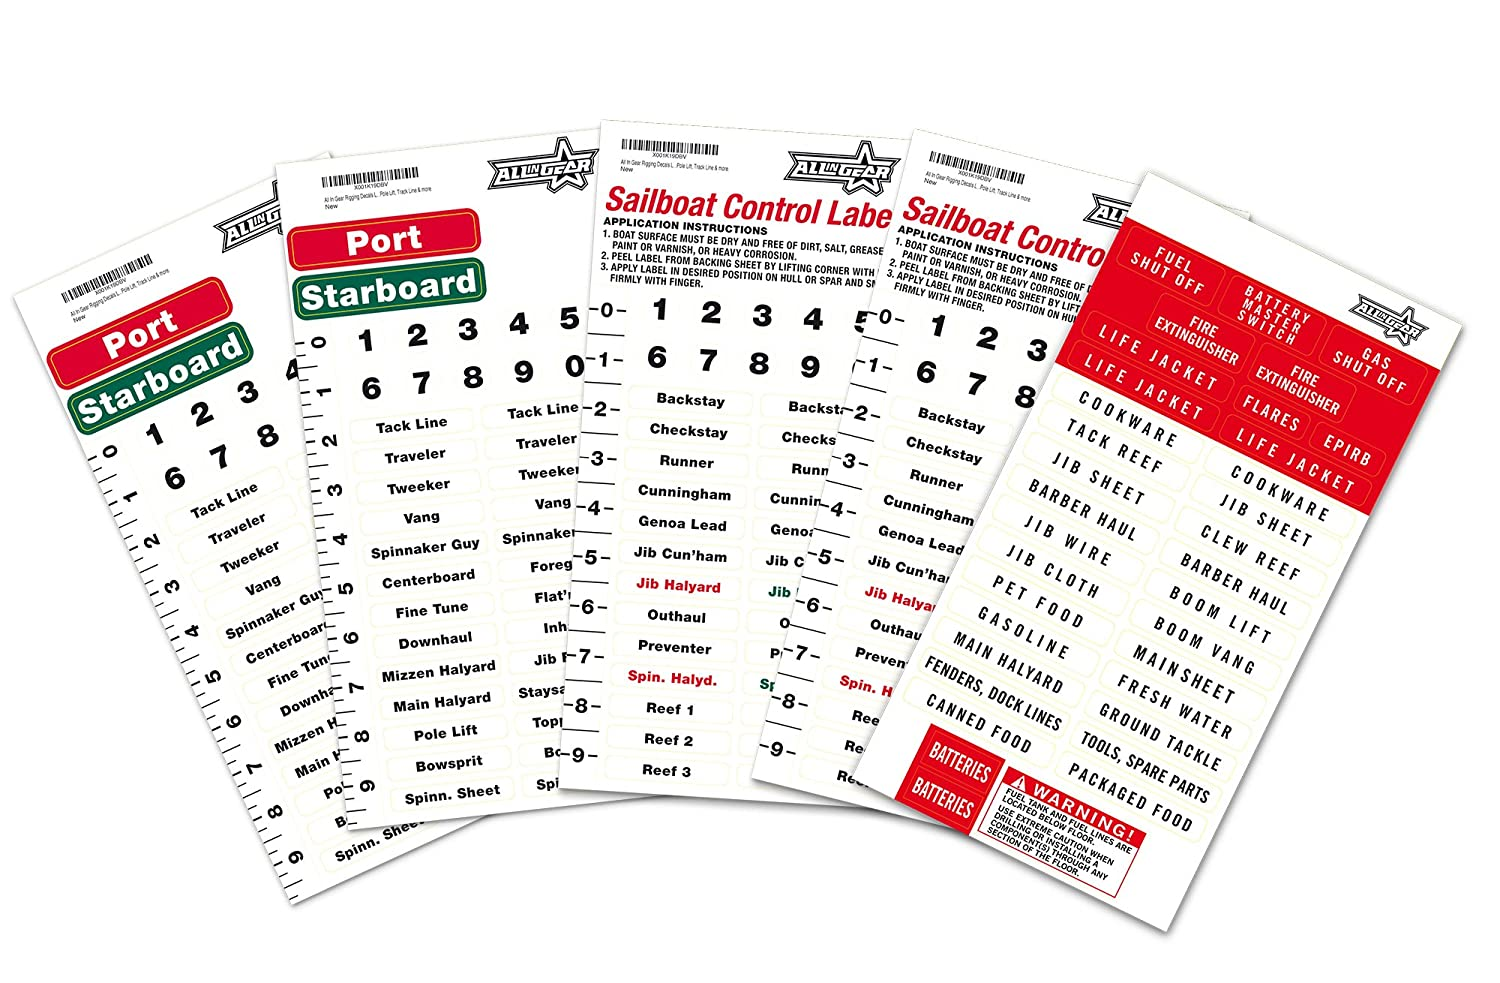 All In Gear Rigging Decals Labels For Sailboat Controls